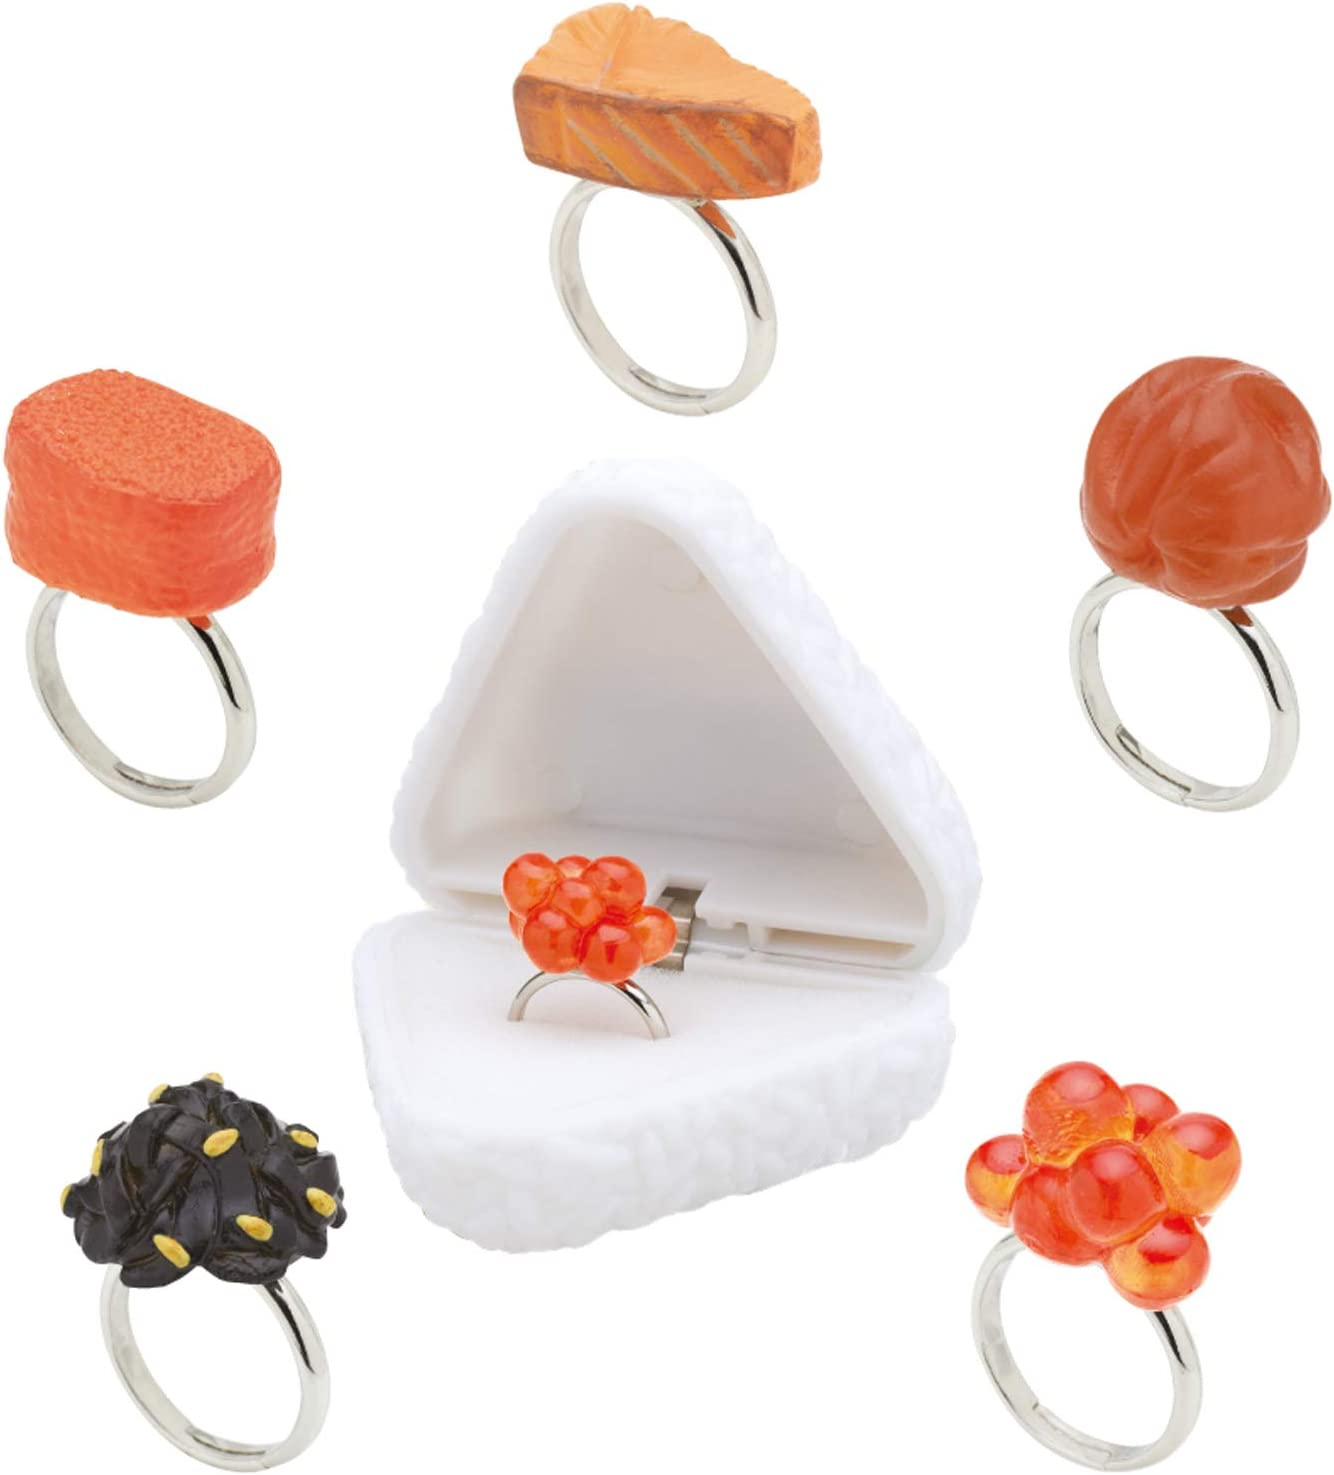 Kitan Club Onigiring (Riceball Ring) Miniature Food Jewelry - Blind Box 1 of 5 Collectable Fake Food Ring - Fun, Versatile Decoration - Authentic Japanese Design